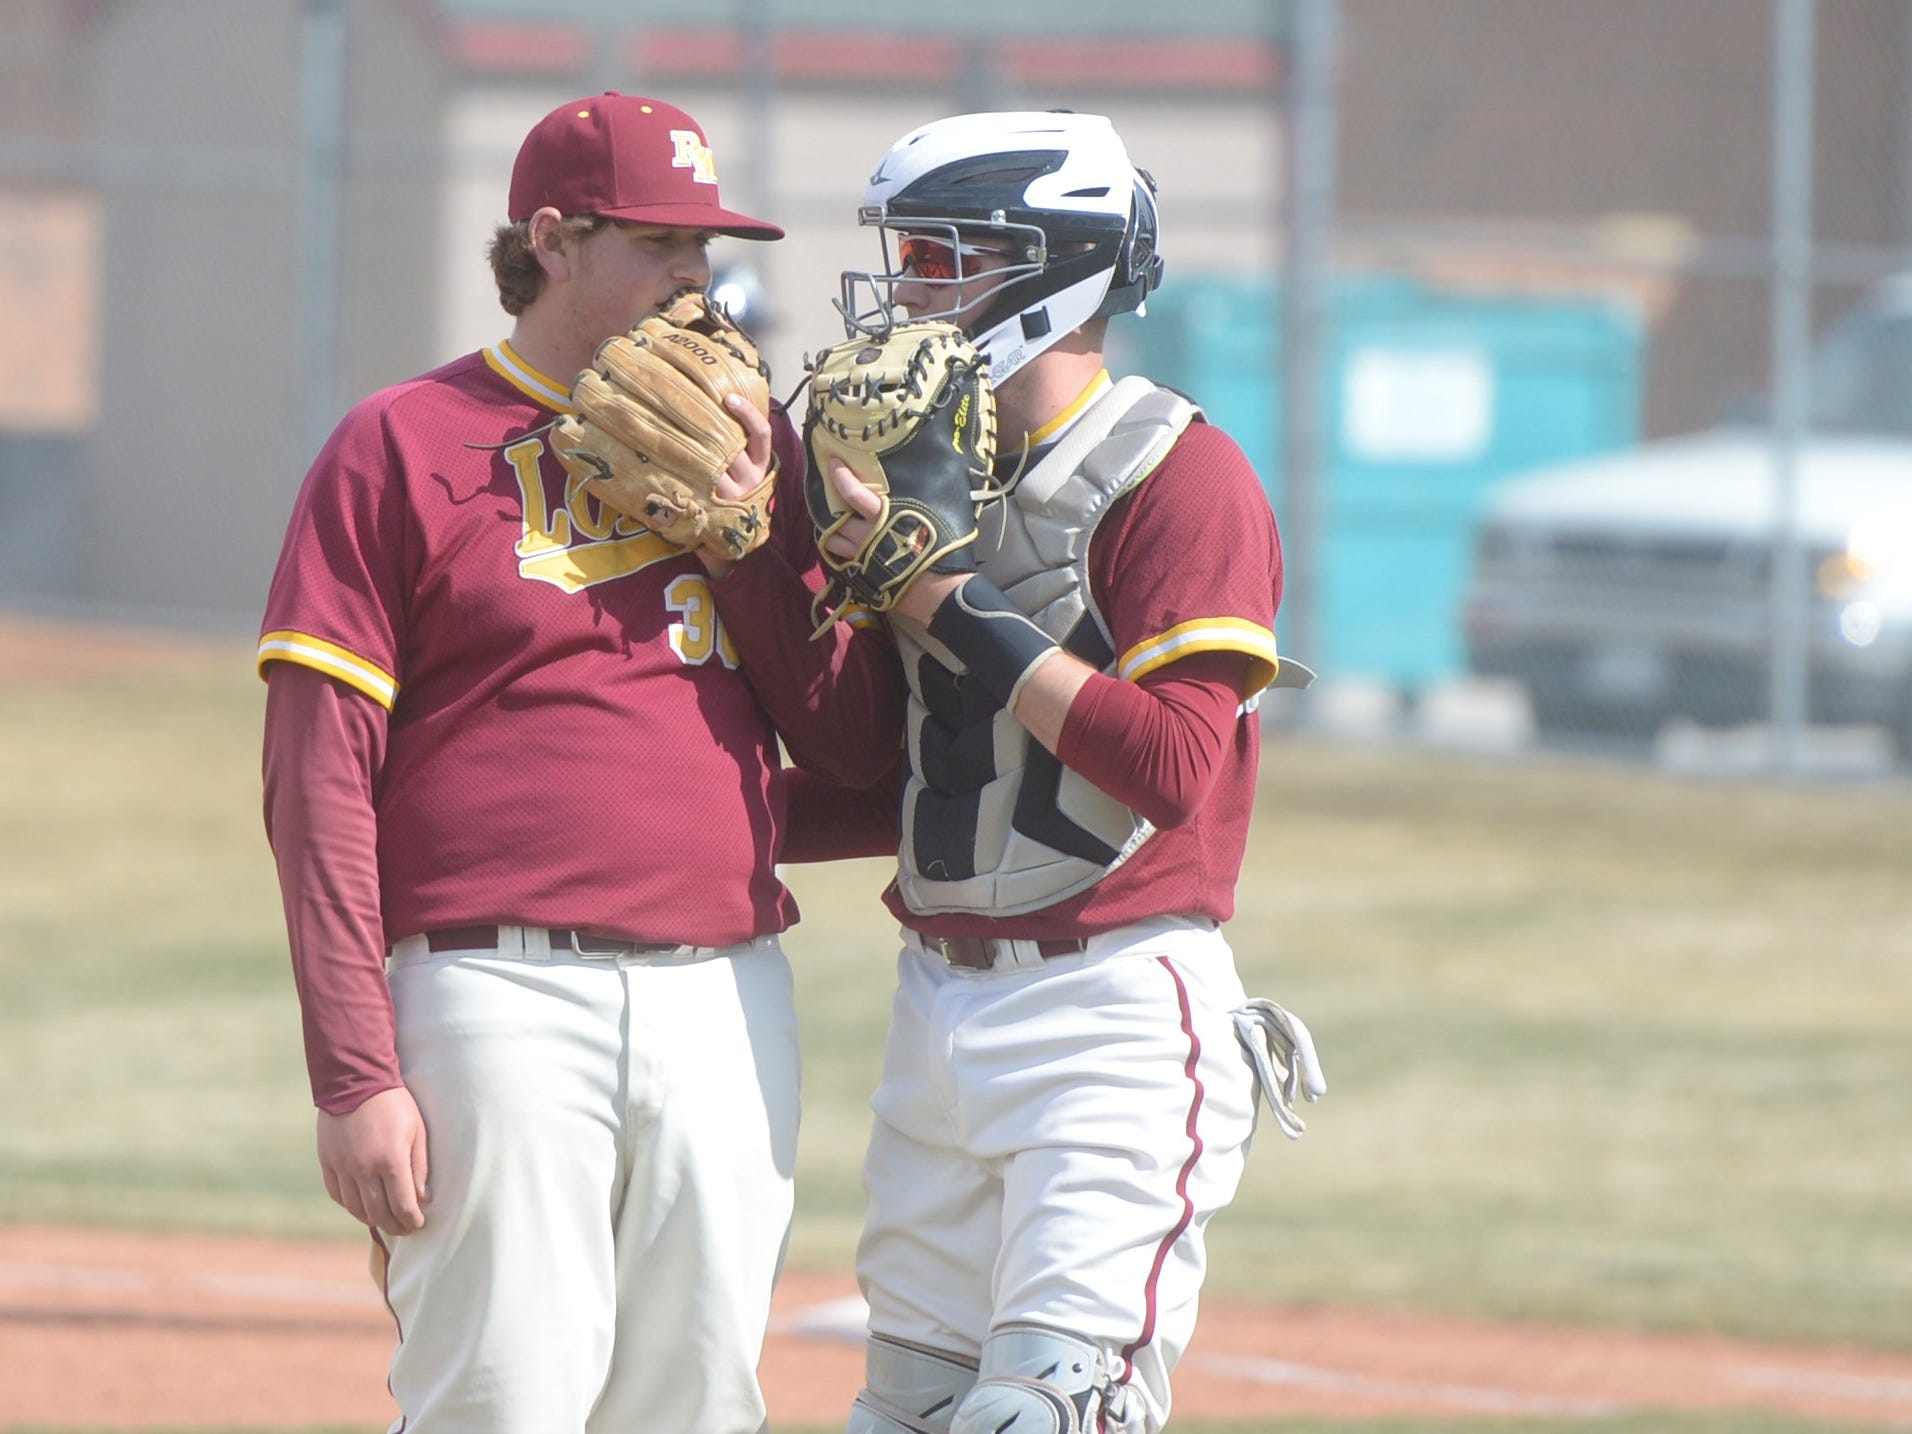 Rocky Mountain baseball pitcher Cade Nelson, left, and catcher Jaren Piepho discuss signs during a game Wednesday, April 3, 2019 against Mountain Vista. Mountain Vista won 10-2.